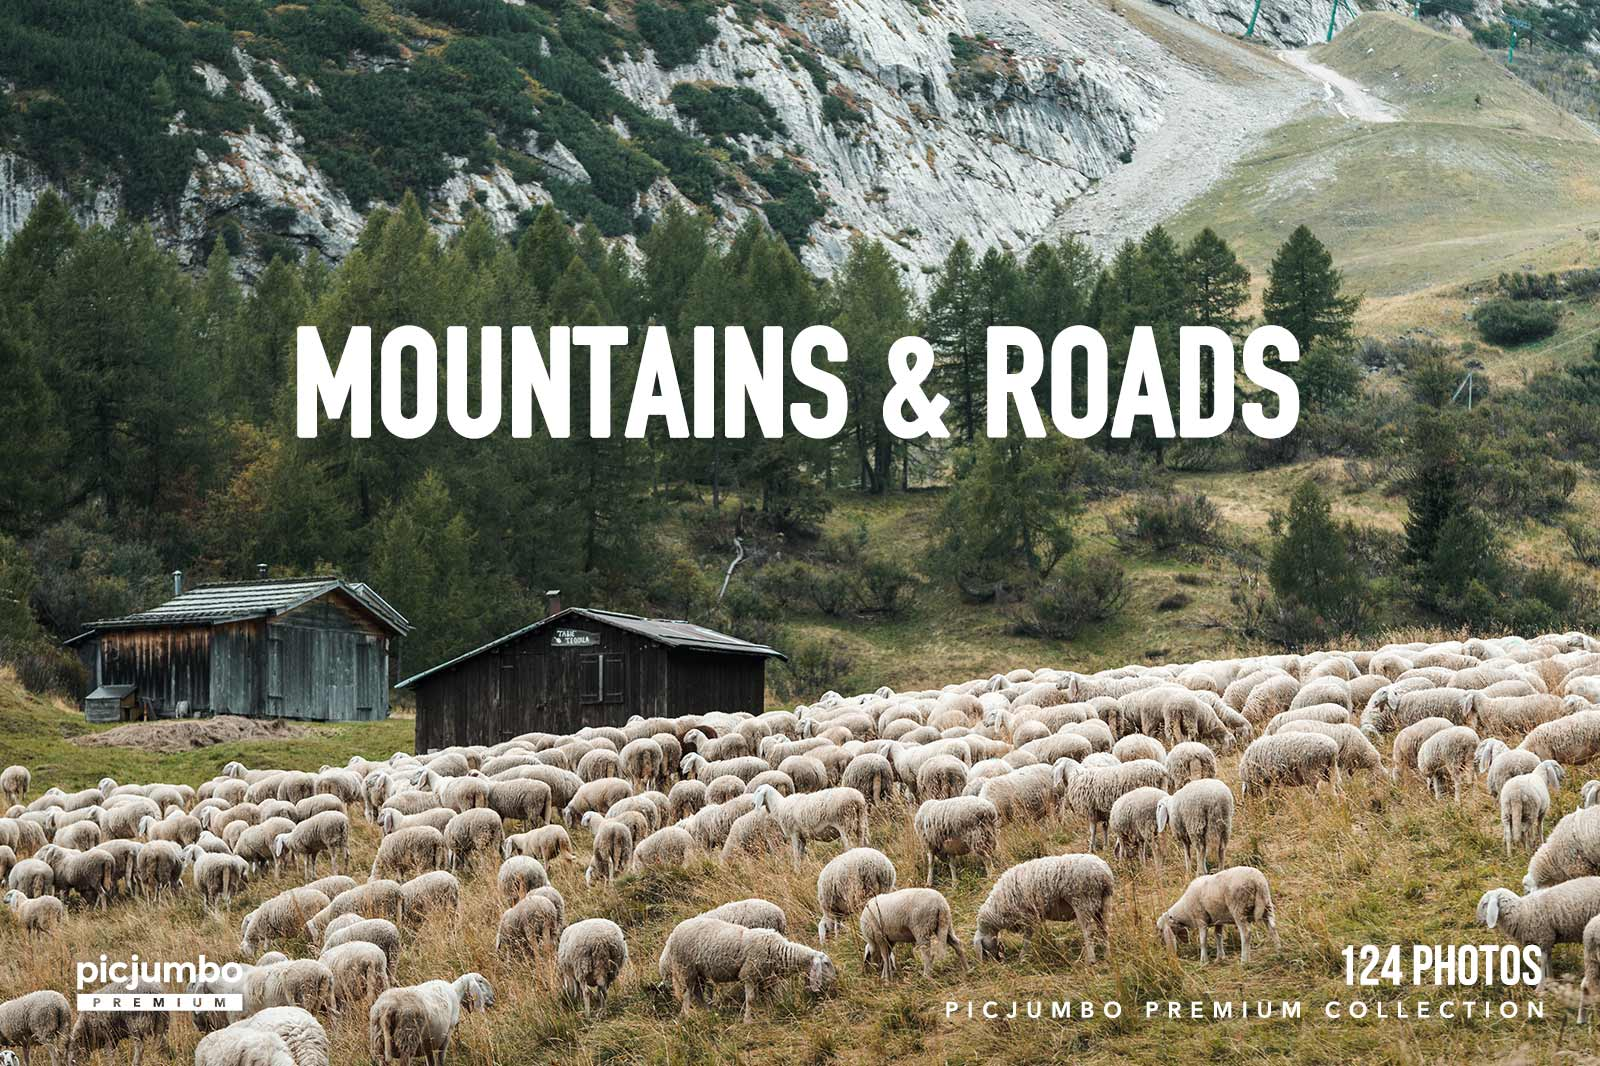 Mountains & Roads — get it now in picjumbo PREMIUM!